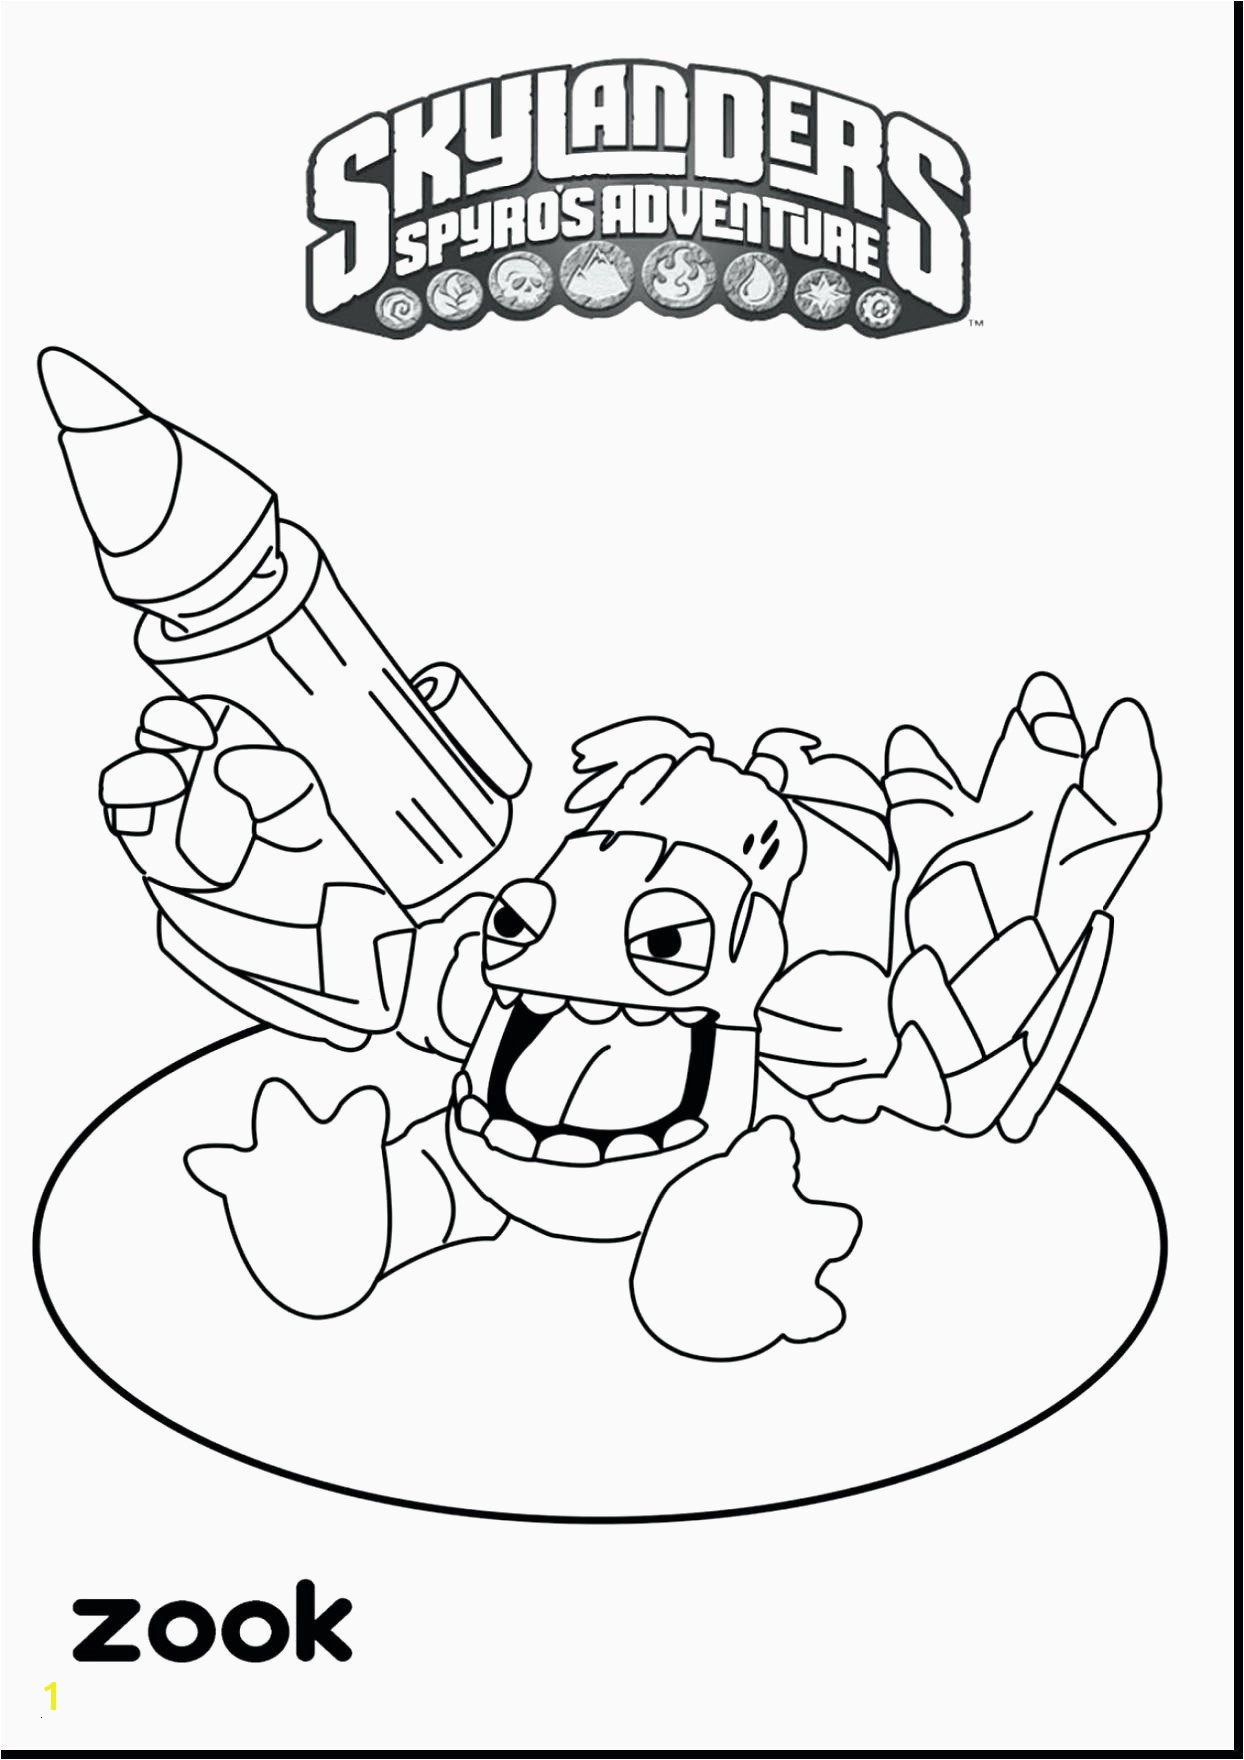 Free Coloring Pages Christmas Nativity Dannerchonoles Free Printable Coloring Page for Kids